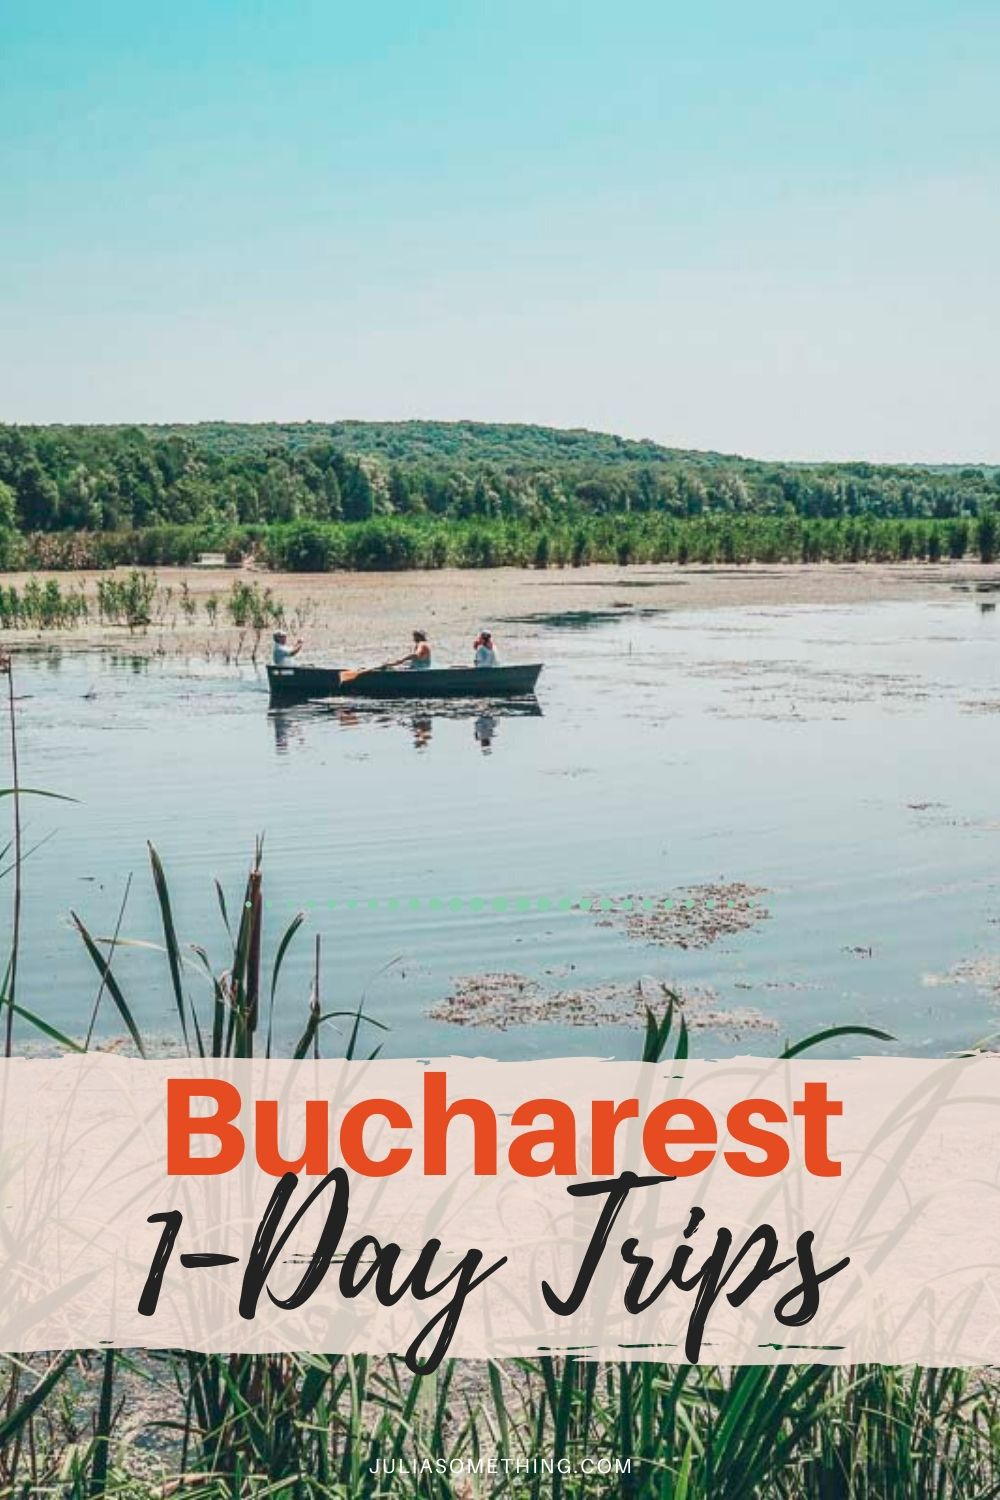 The Best Day Trips From Bucharest, Romania | 1-day trip from Bucharest, Romania | Day trips ideas from Bucharest, Romania | What to do in Bucharest, Romania | What to do around Bucharest, Romania | Day trip ideas from Bucharest, Romania #Romania #Bucharest #daytrip #roadtrip